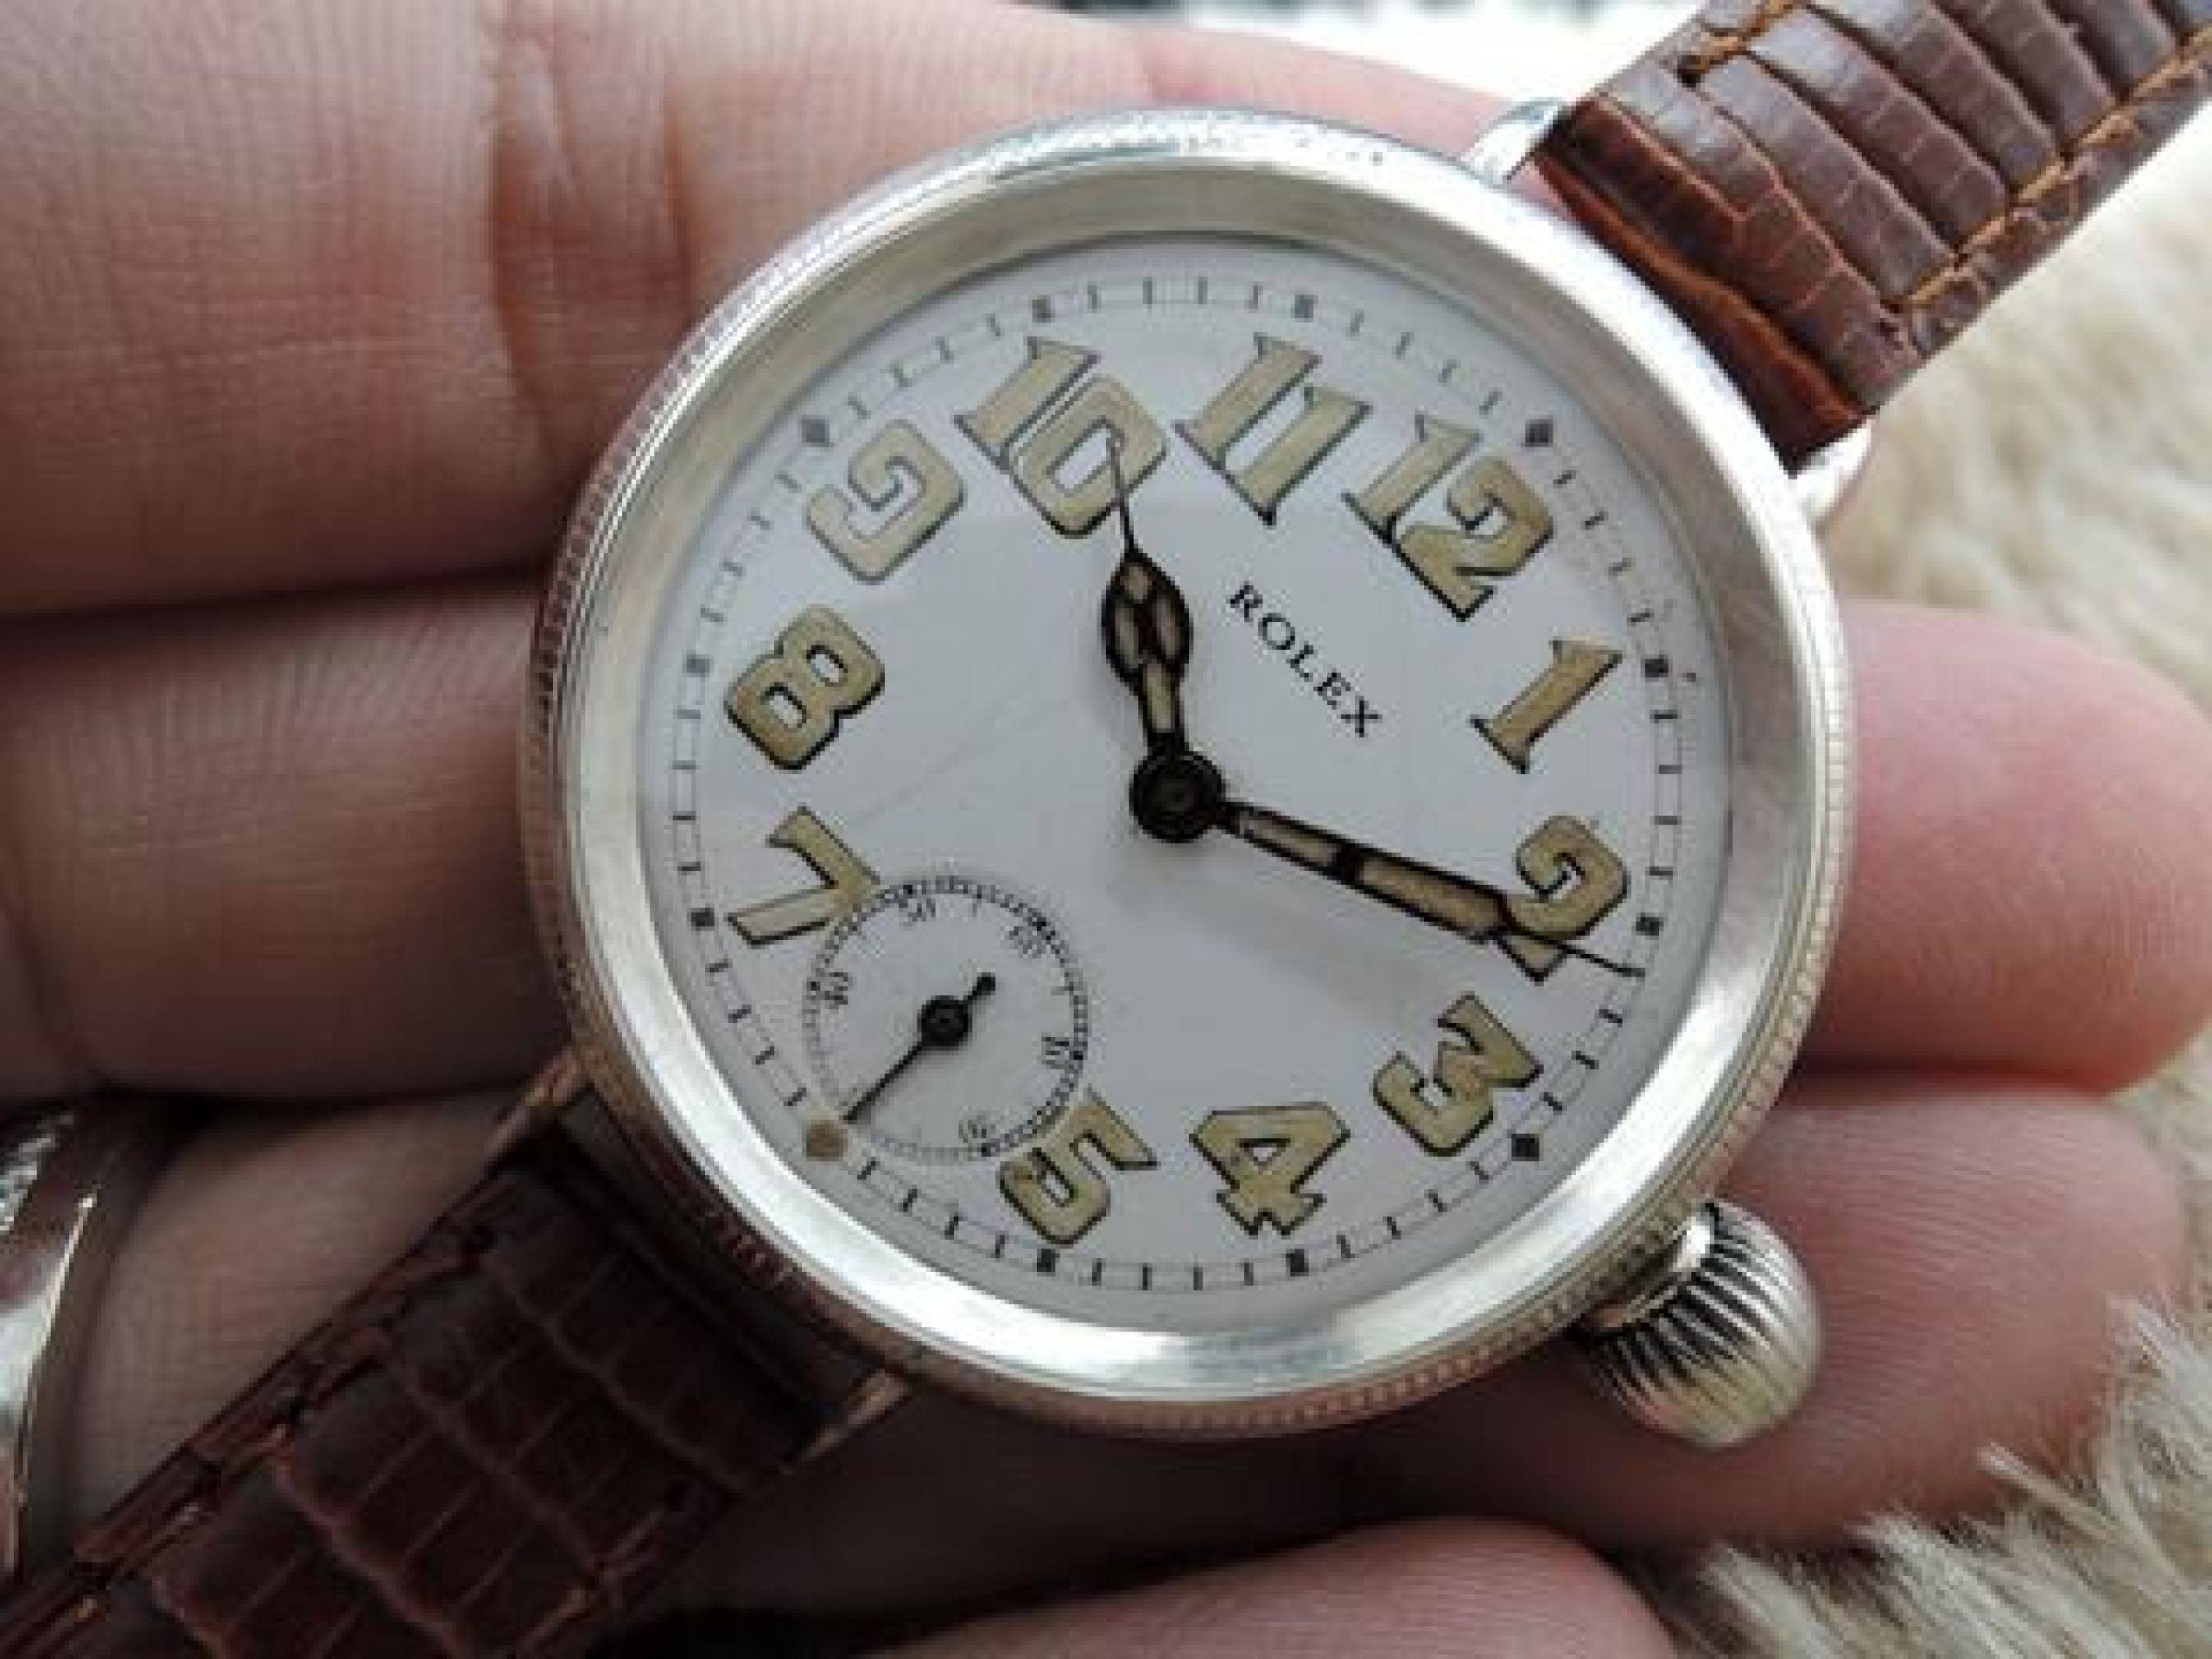 1914 ROLEX OFFICER WITH ORIGINAL ENAMEL WHITE DIAL WITH ARABIC NUMERALS